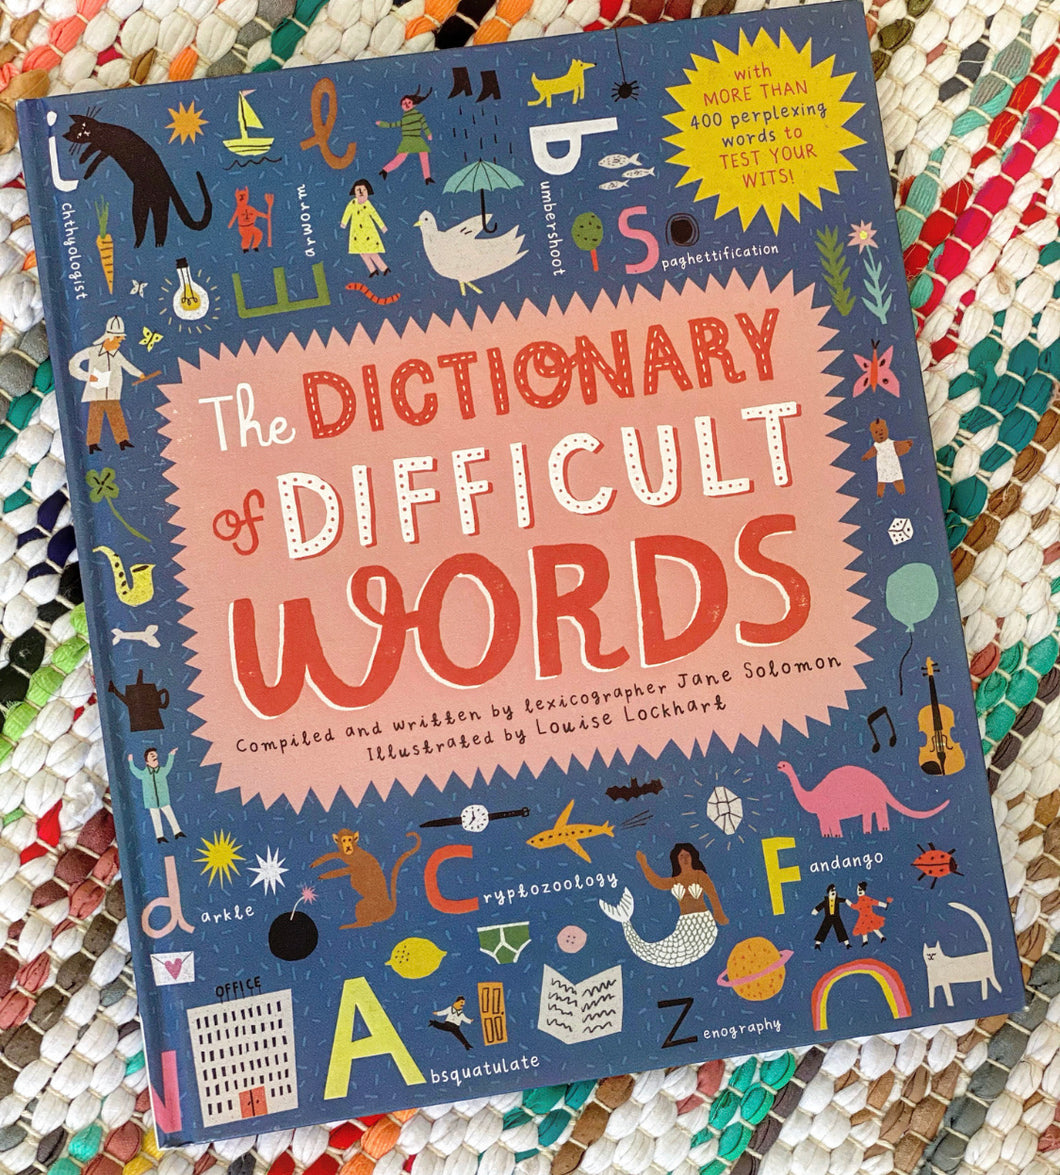 The Dictionary of Difficult Words: With More Than 400 Perplexing Words to Test Your Wits! | Jane Solomon